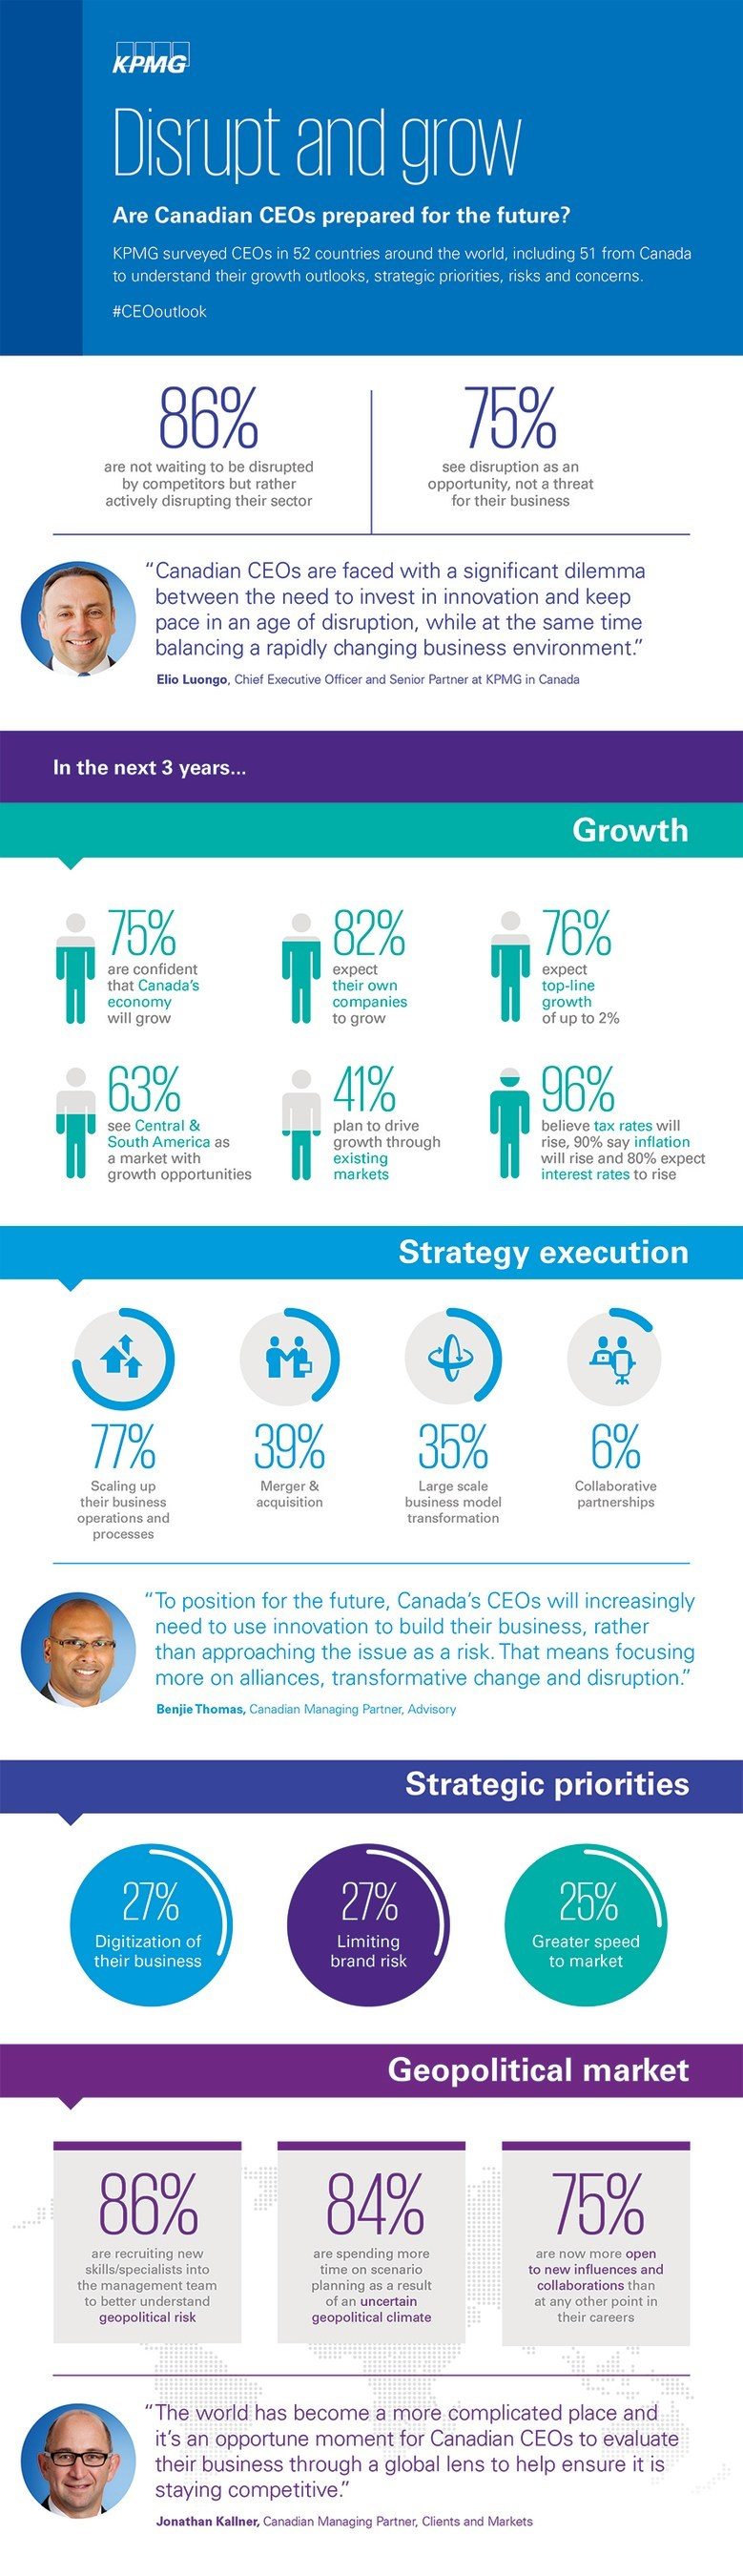 [Infographic] Disrupt and grow: 2017 Canadian CEO Outlook, KPMG LLP